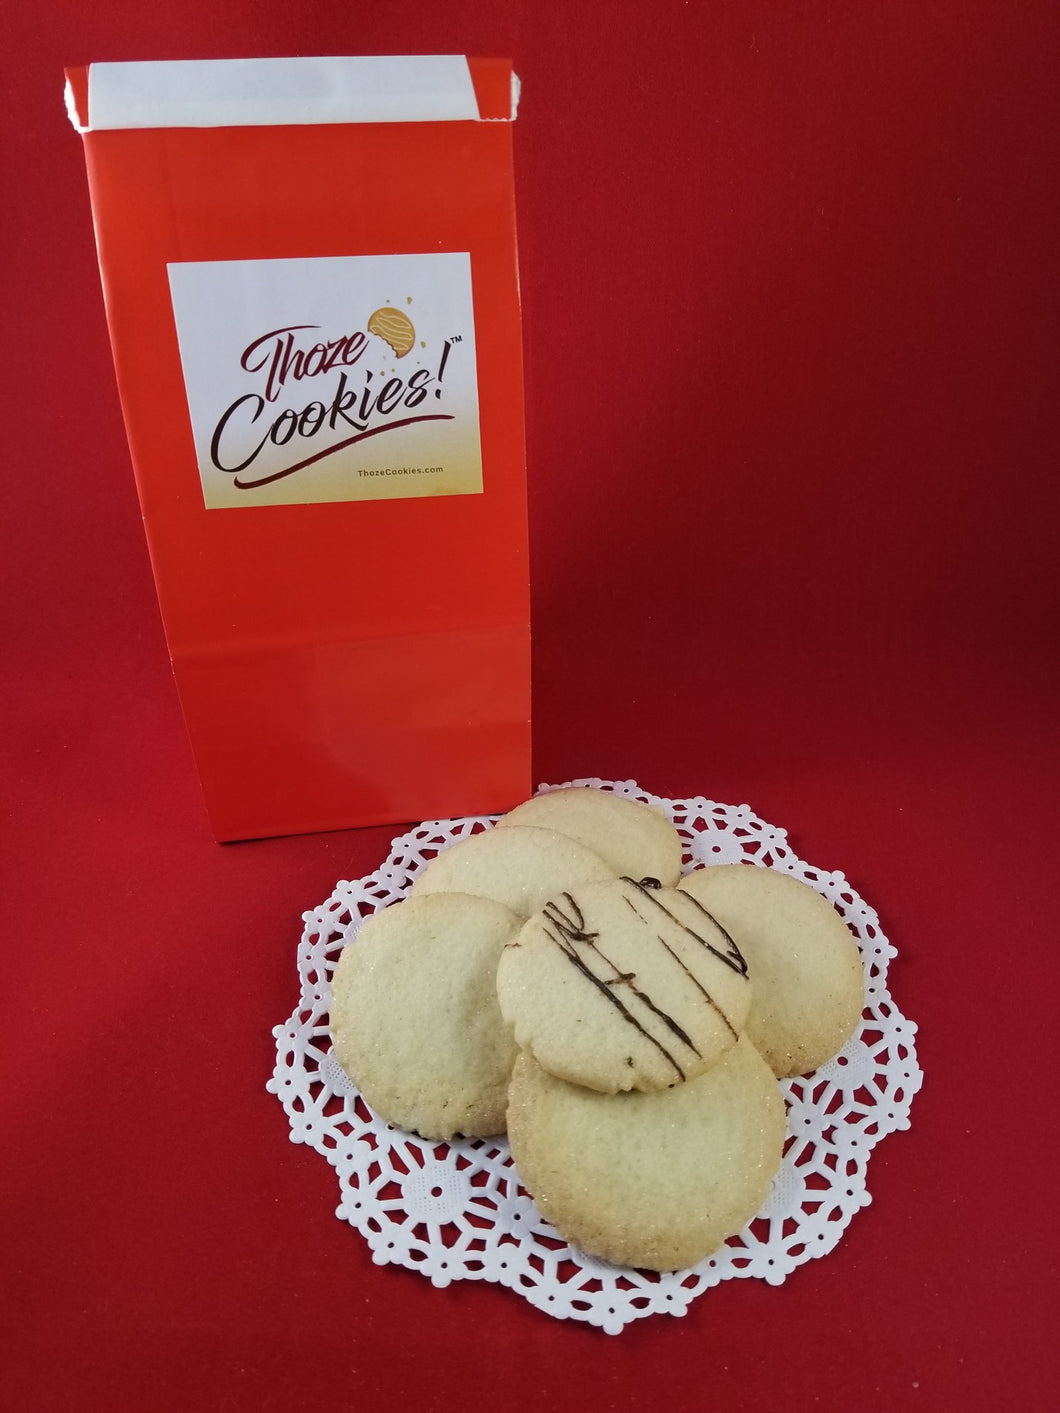 The Original Butter Cookie